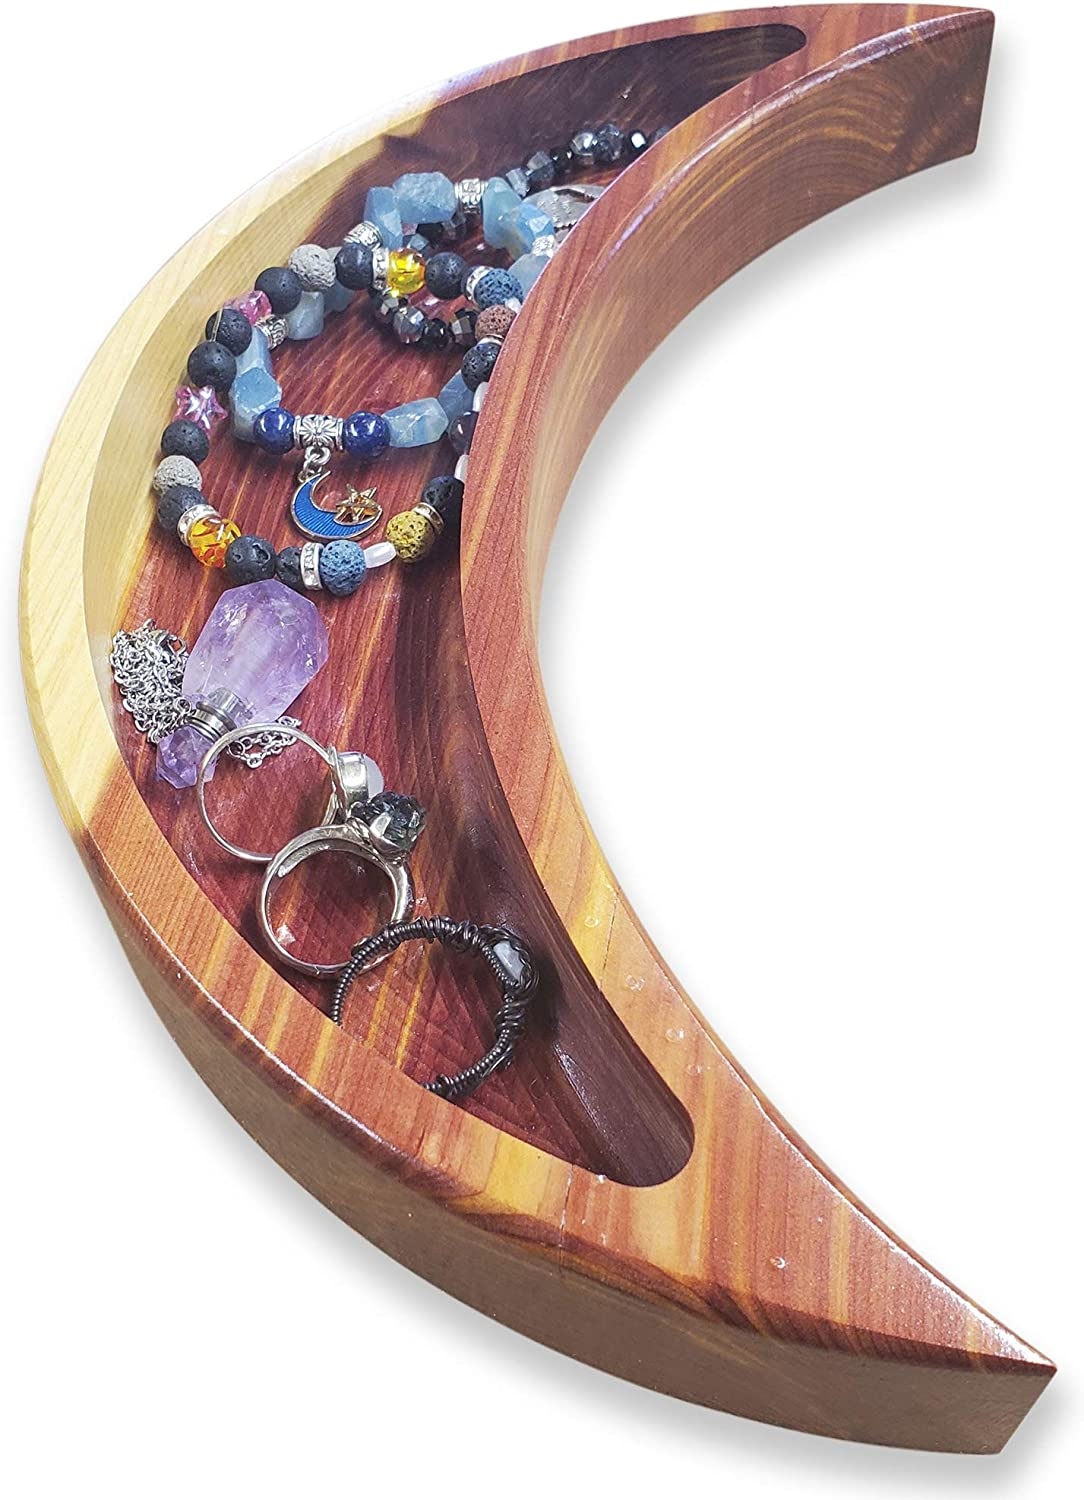 Crescent Moon Tray to Organize your Crystals, Moon Rocks - Wooden Rustic Dish Décor for Essential Oils - Jewelry holder Organizer